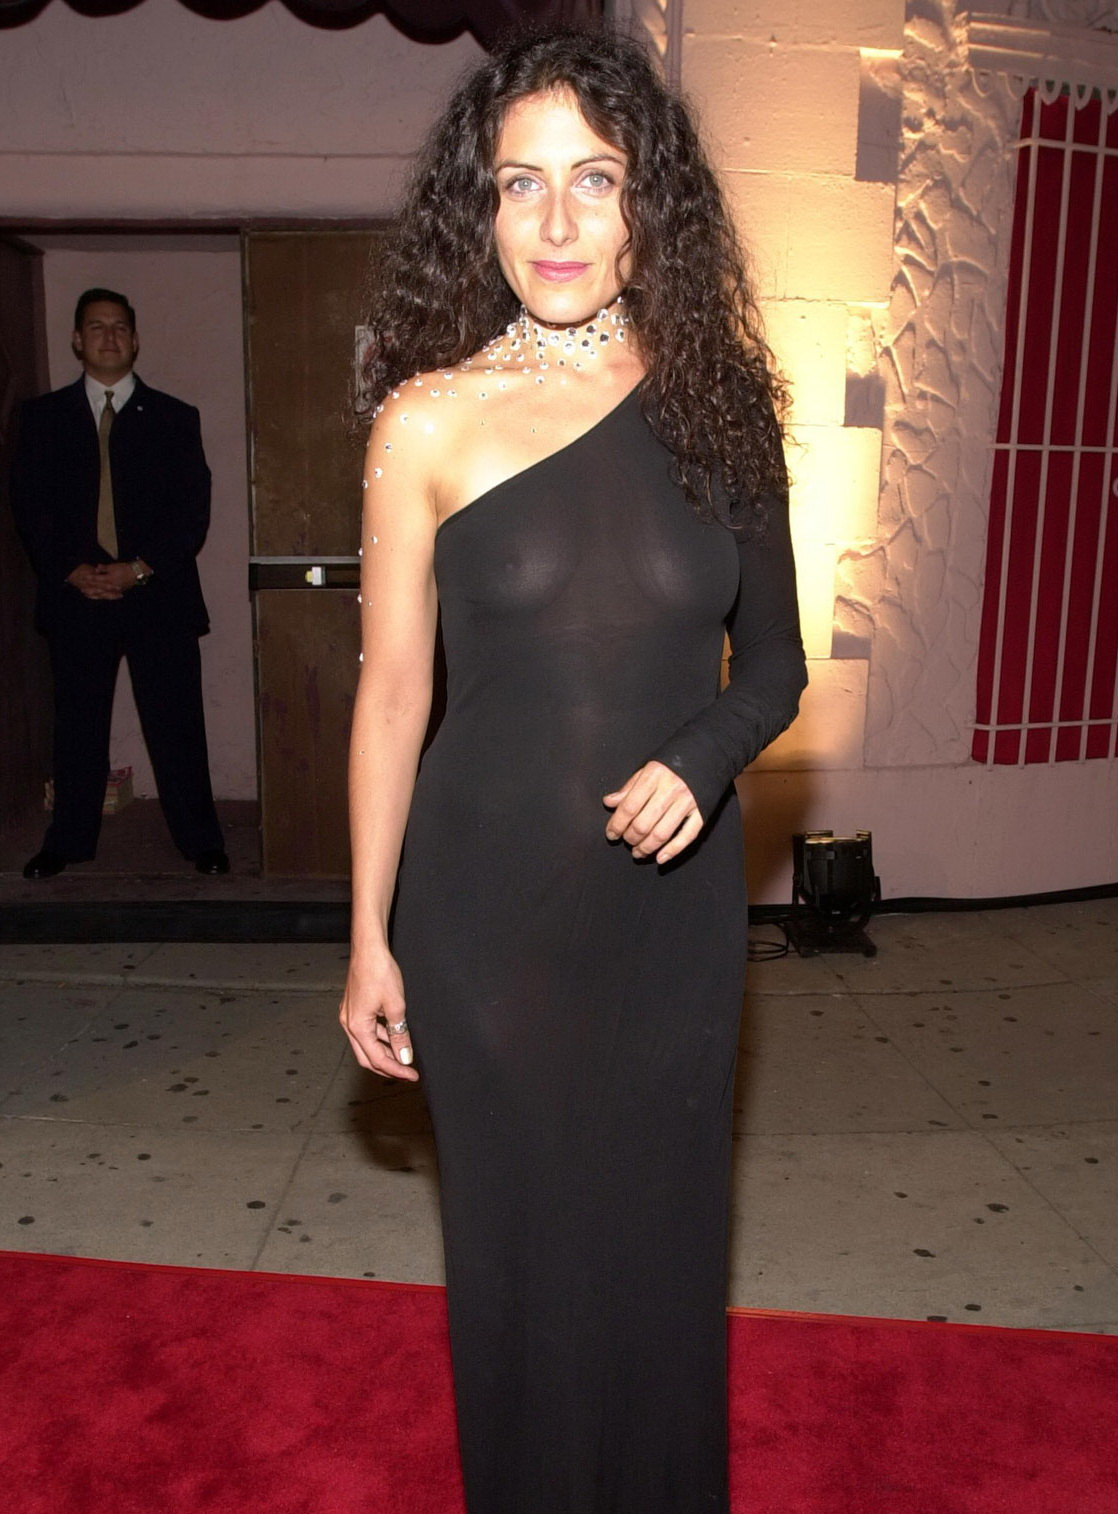 lisa-edelstein-see-through-black-dress-01.jpg